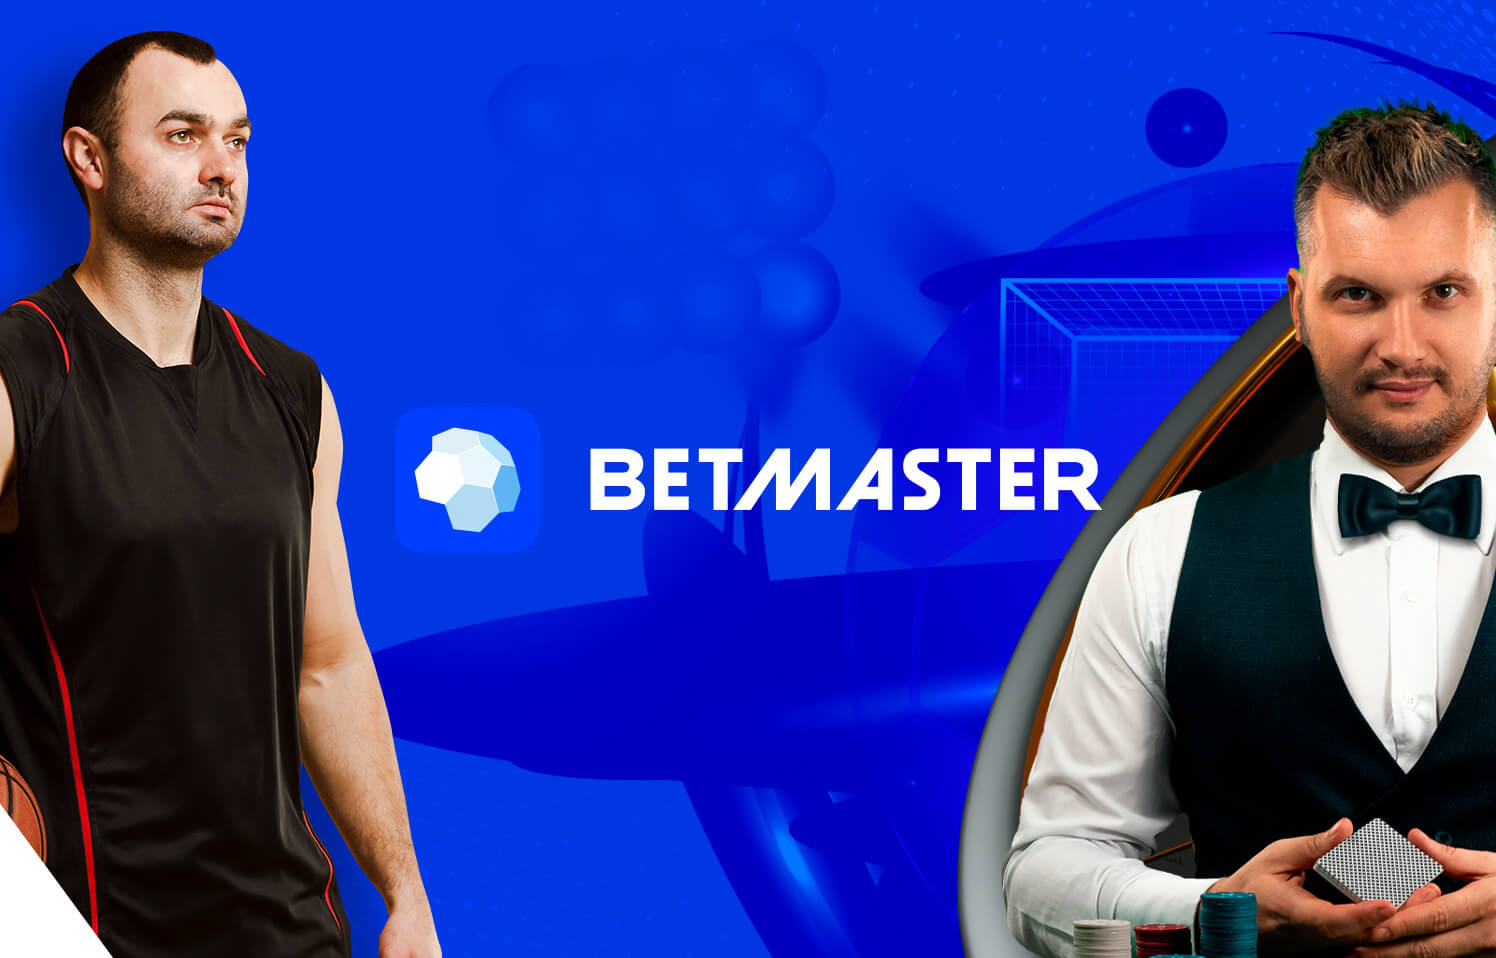 Betmaster pros contras